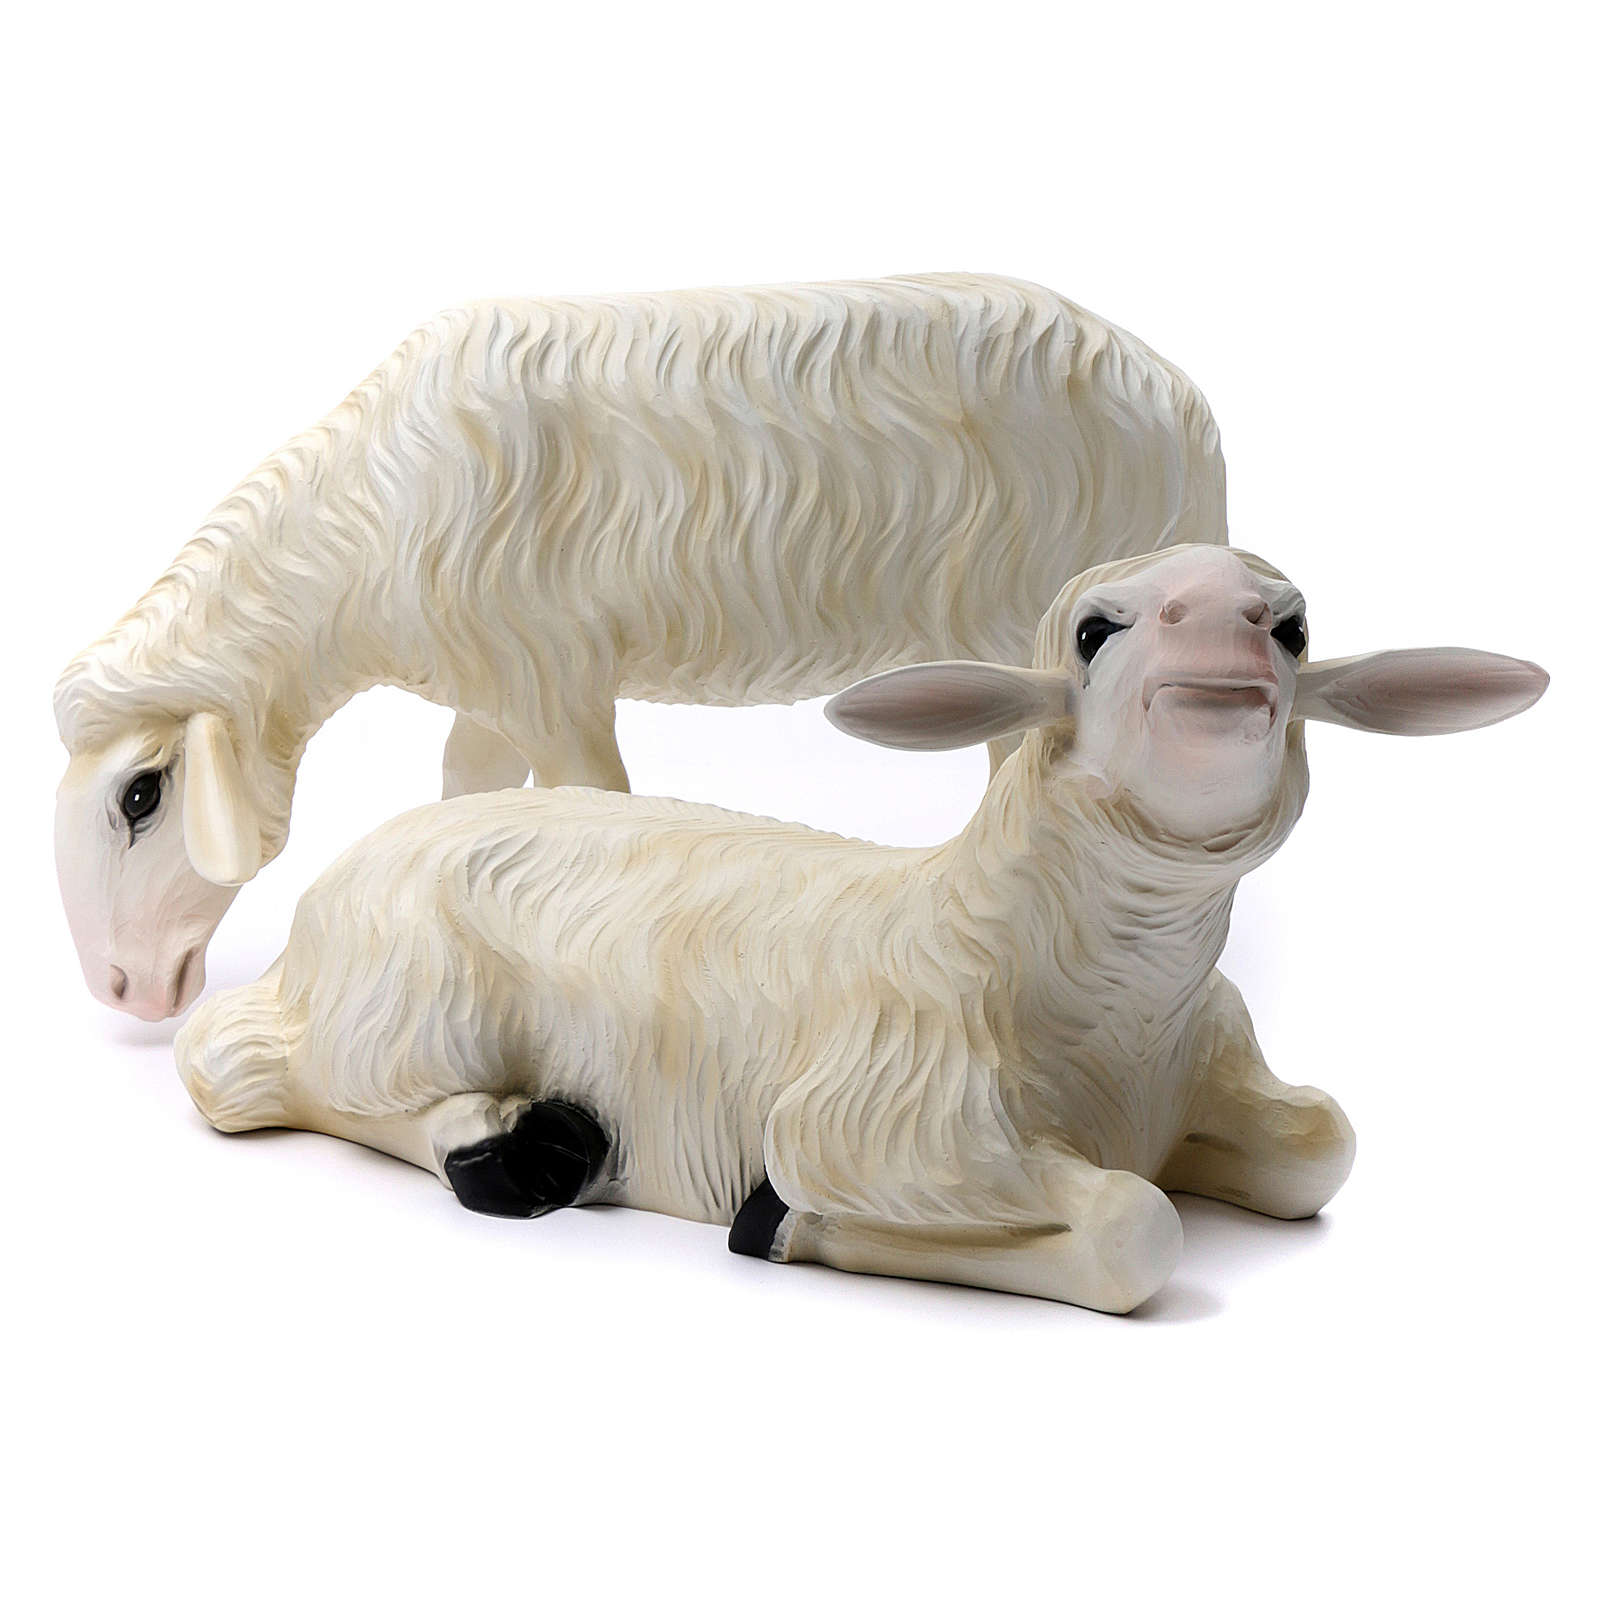 2 Sheep for Nativity Scene, 80 cm in painted fiberglass FOR OUTDOORS 4